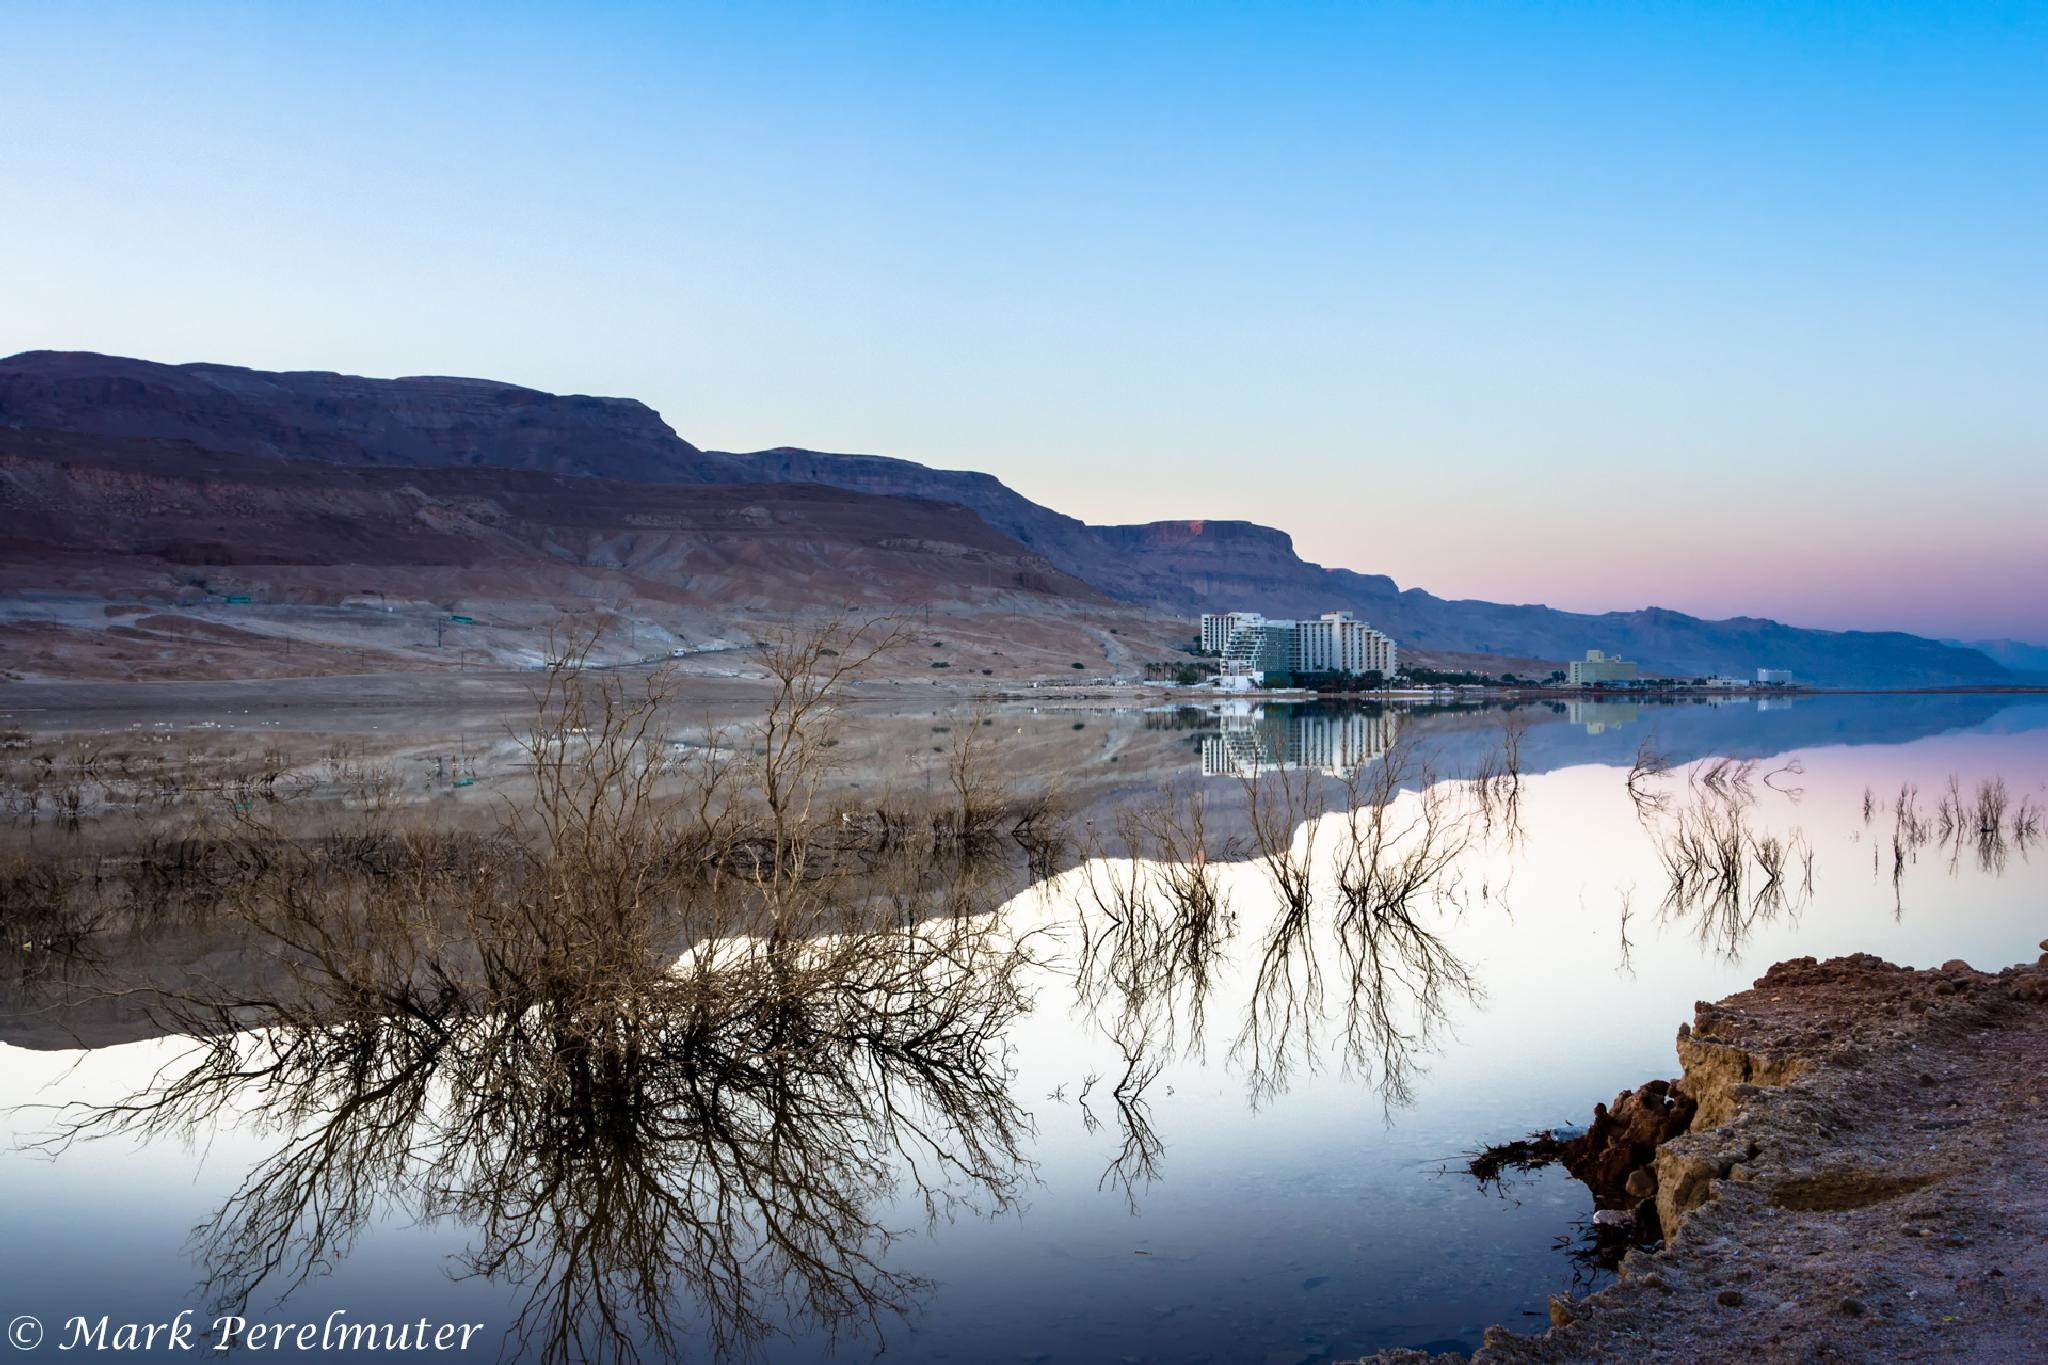 Dead reflection by Mark Perelmuter